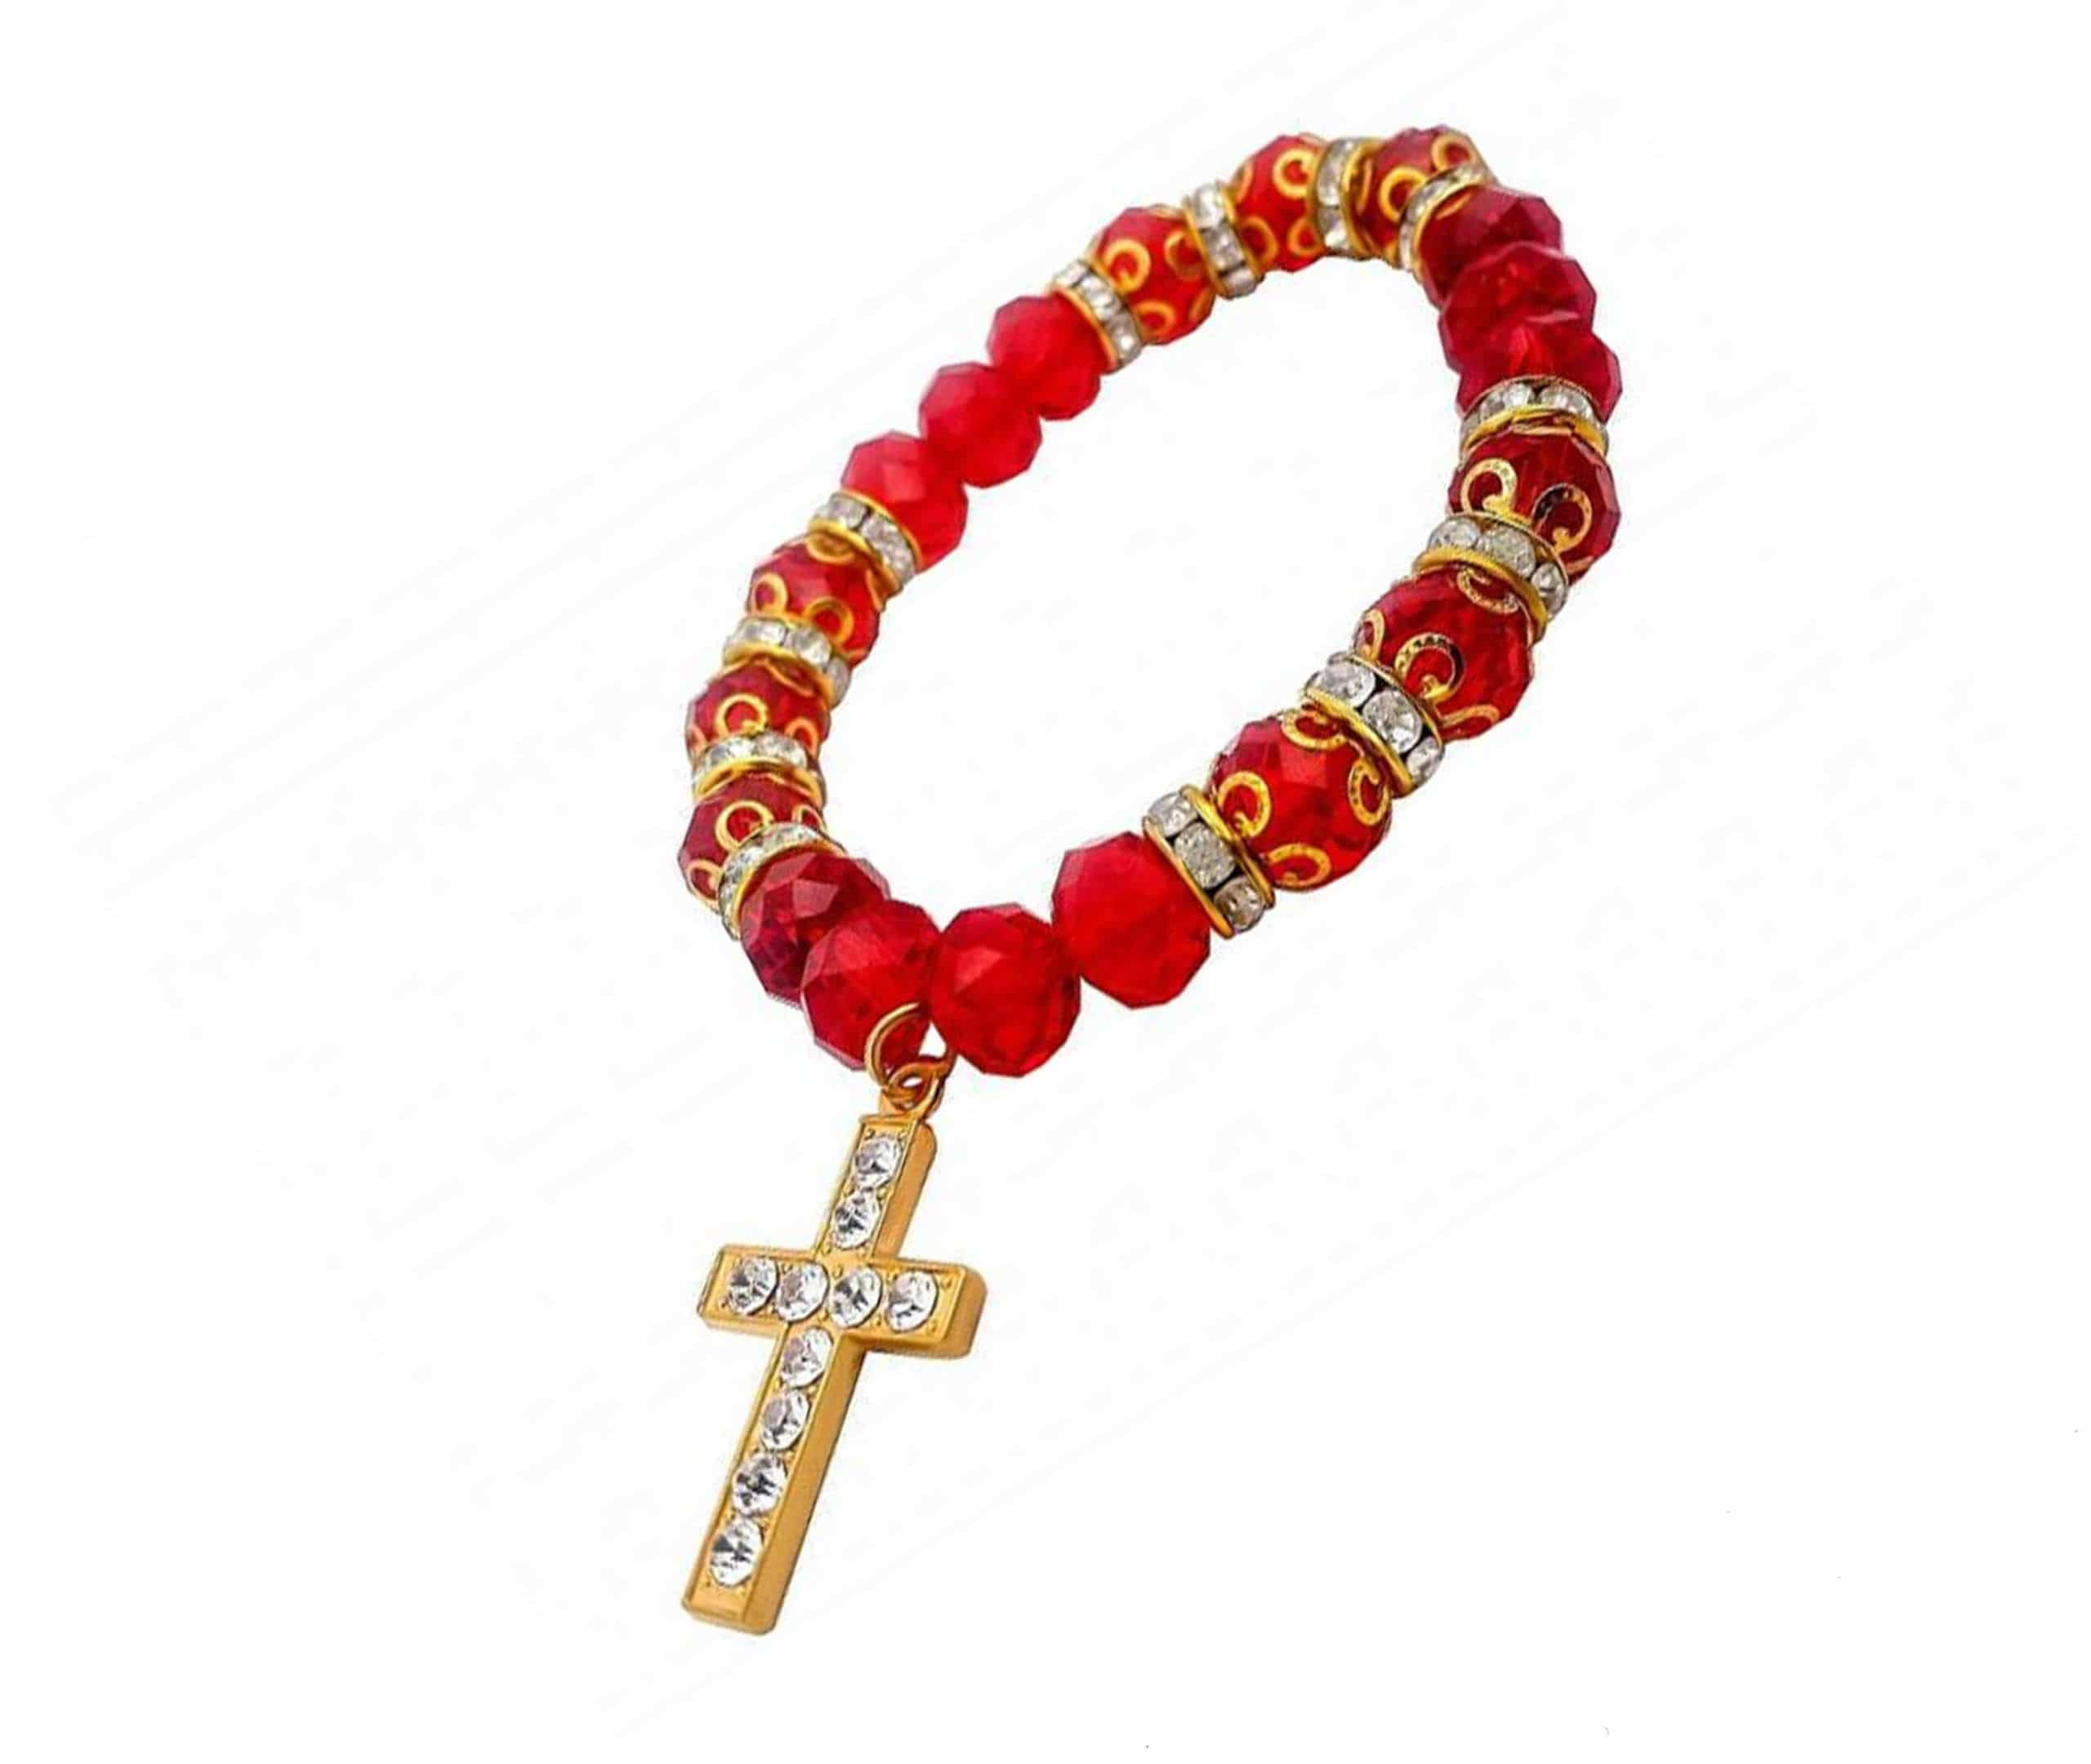 Red resin rosary beads bracelet with silver chain Miraculous medal Catholic gift